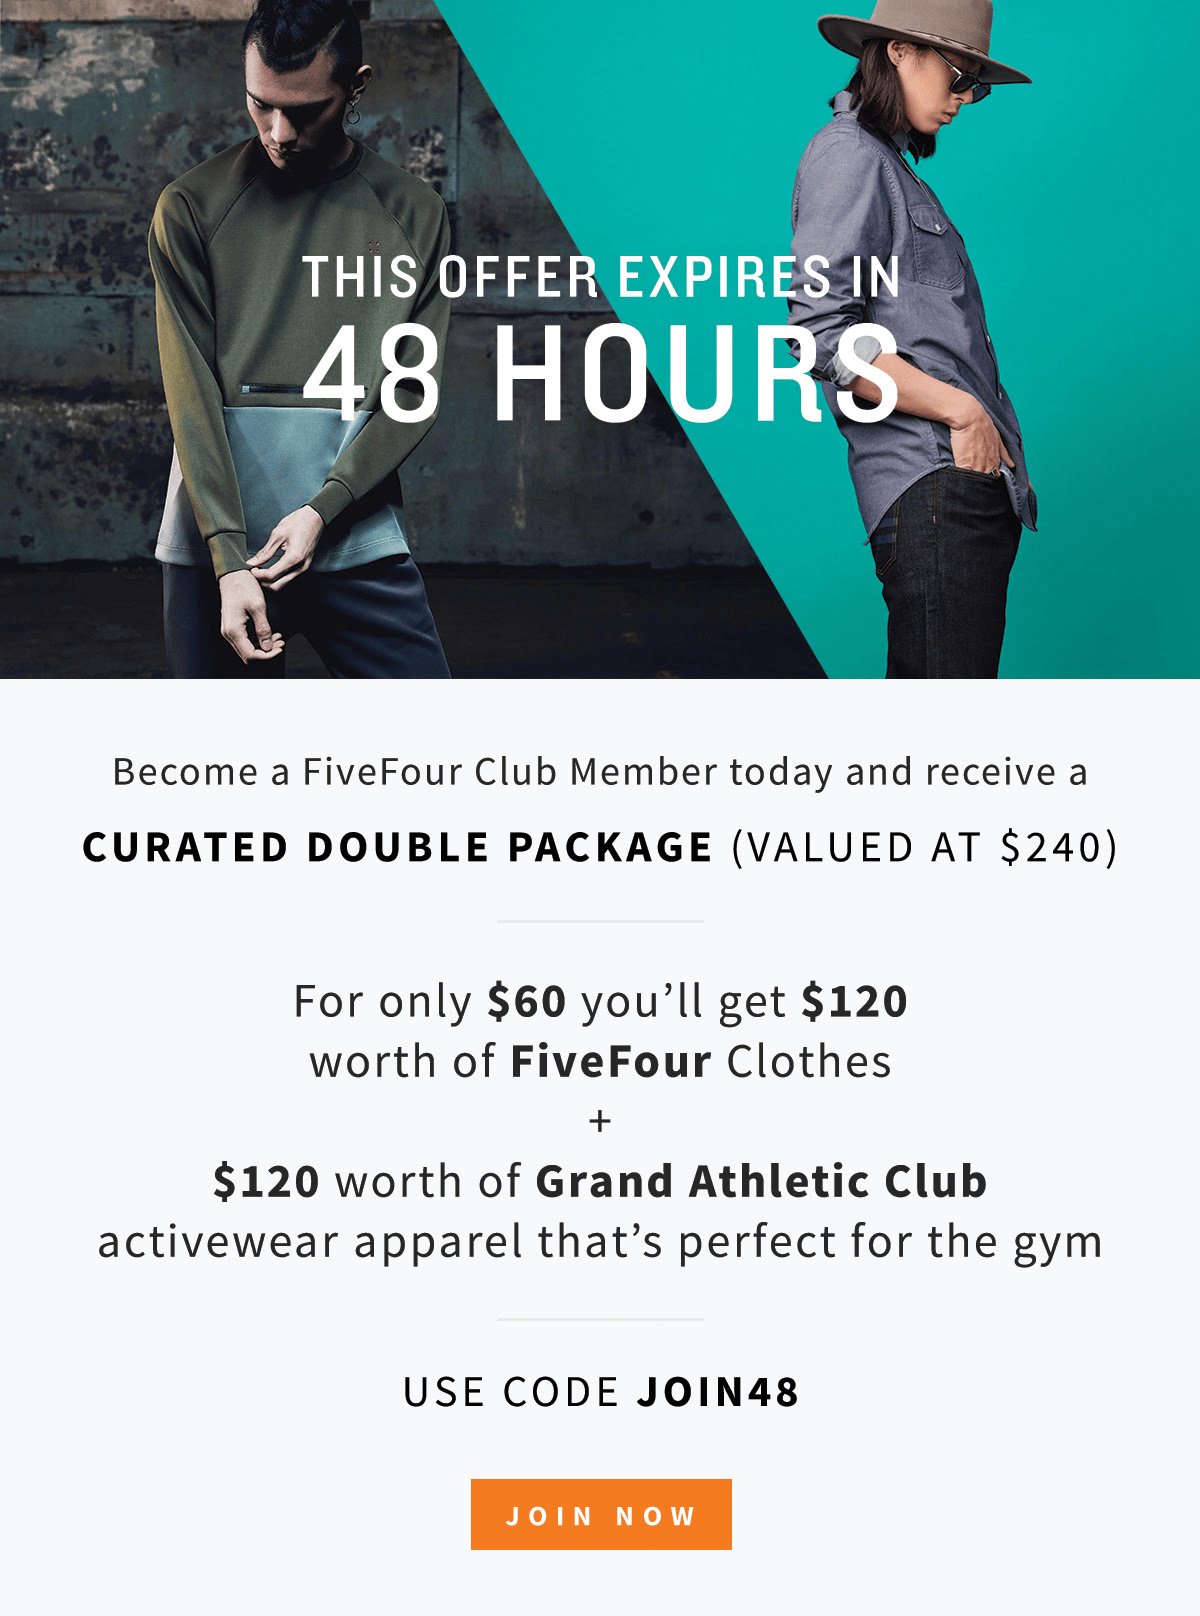 Five Four Club Deal: Double the Value of Clothes In First Month!